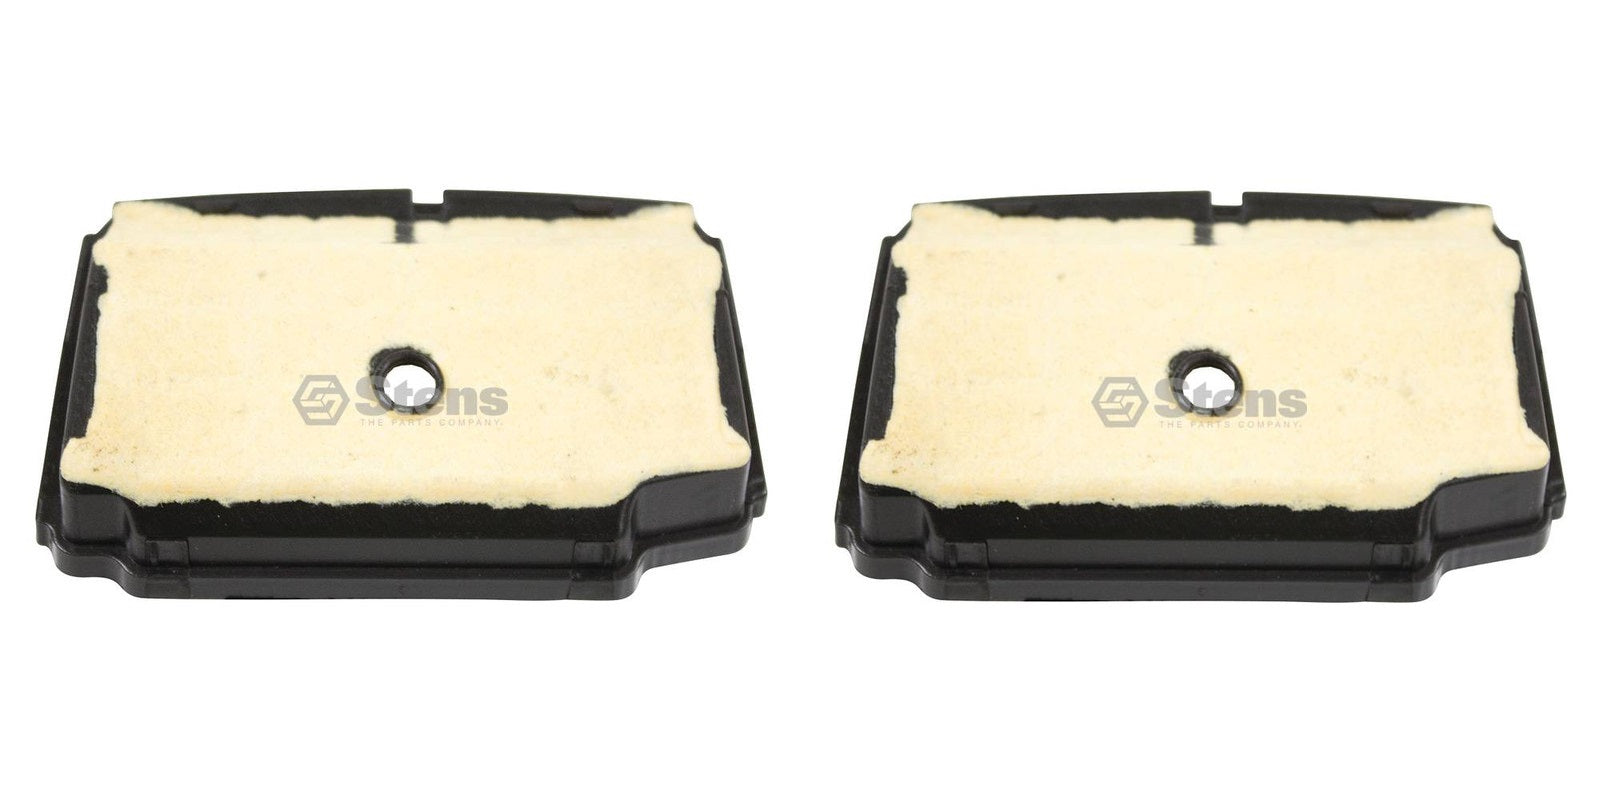 2 Pack Stens 605-392 Air Filter Fits Stihl 1137-120-1600 MS192T